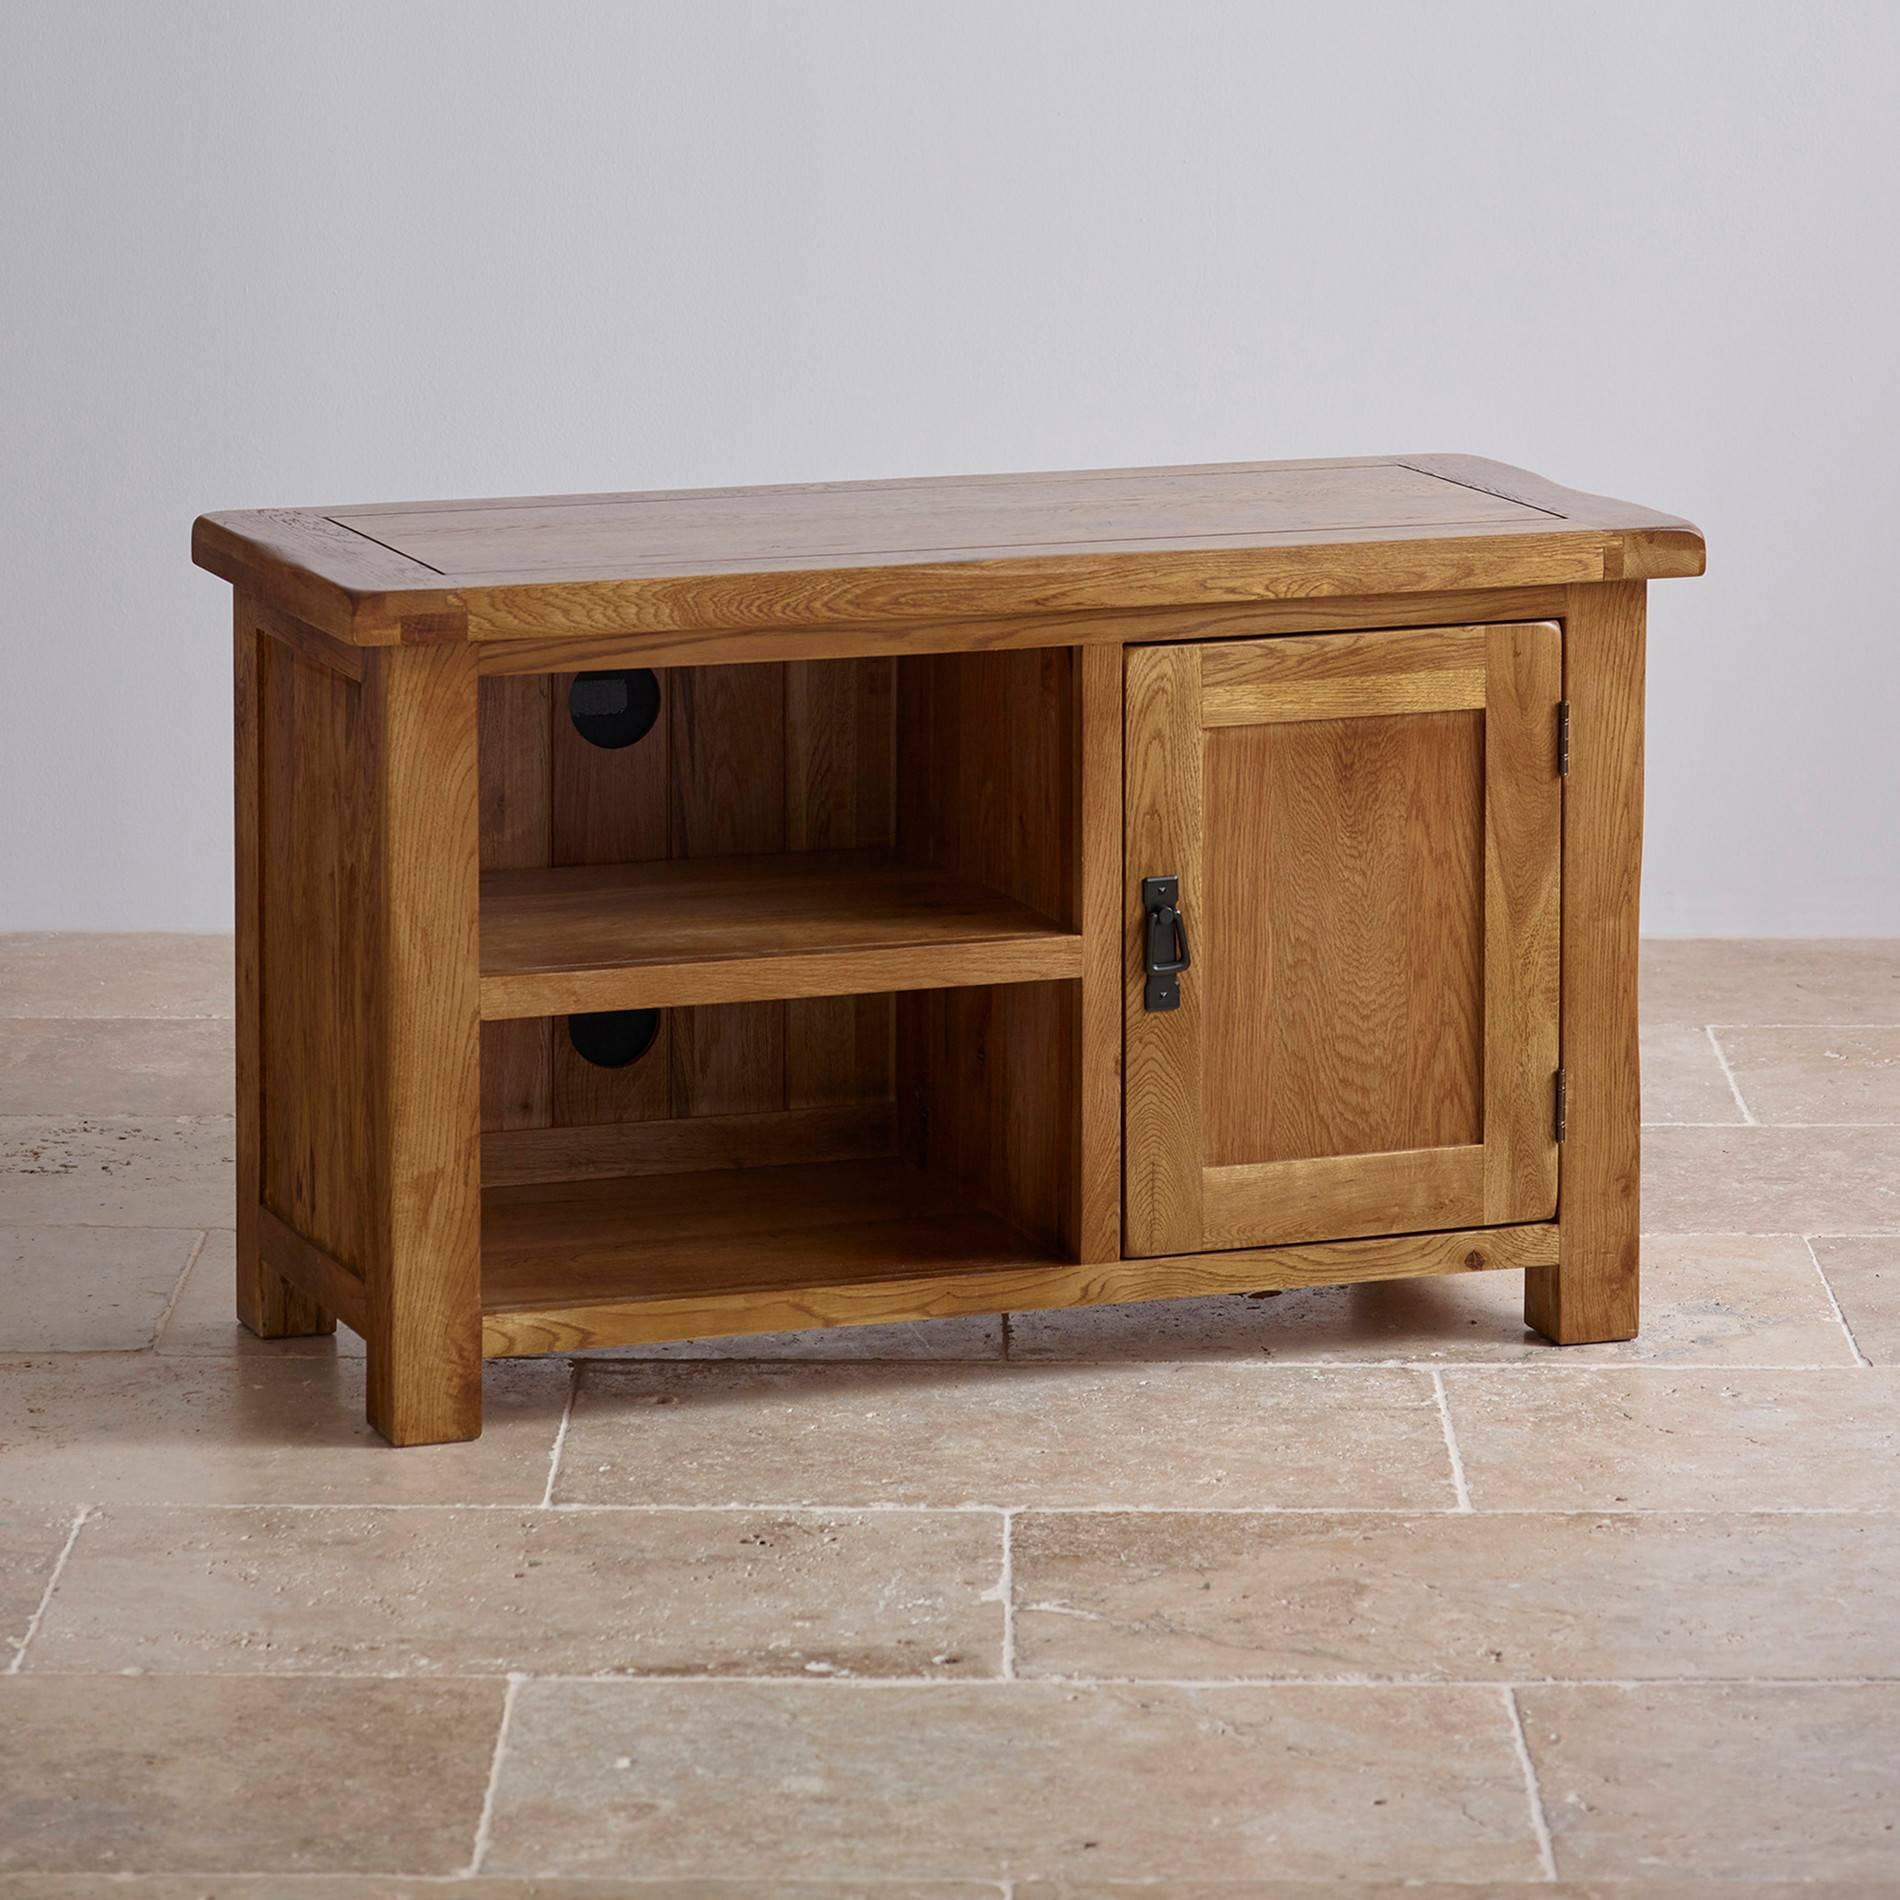 Original Rustic Tv Cabinet In Solid Oak | Oak Furniture Land for Tv Cabinets (Image 11 of 15)